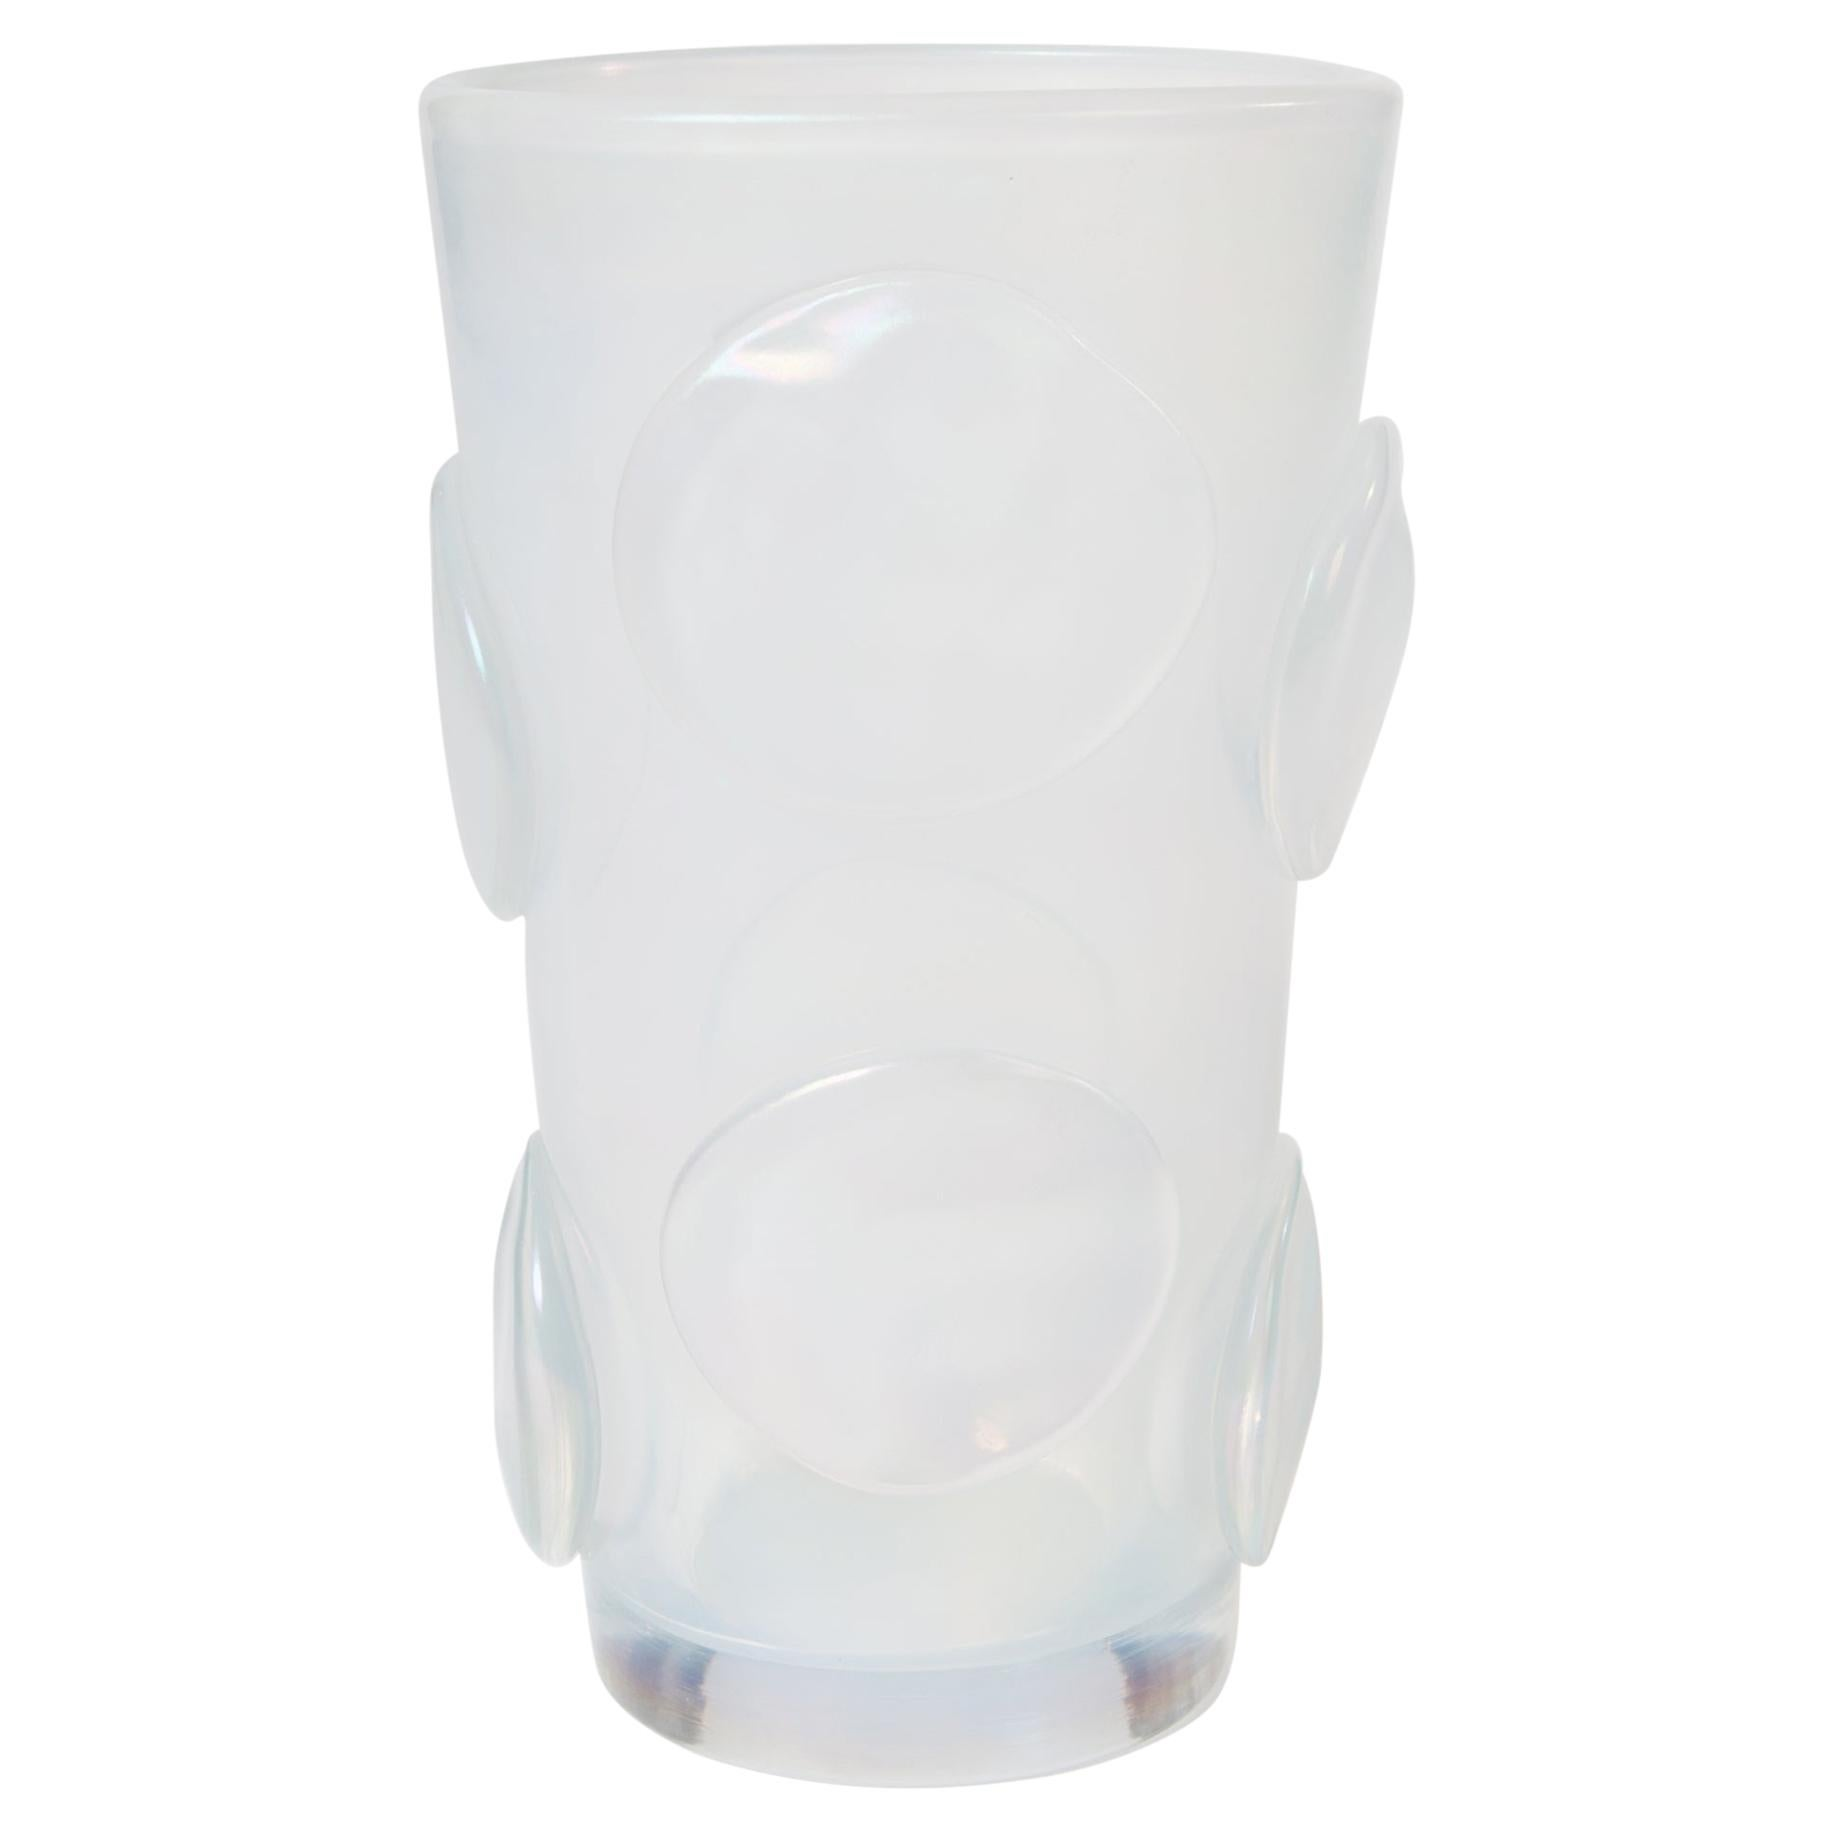 Modern Italian Opalescent Murano Glass Vase with Applications by Pino Signoretto